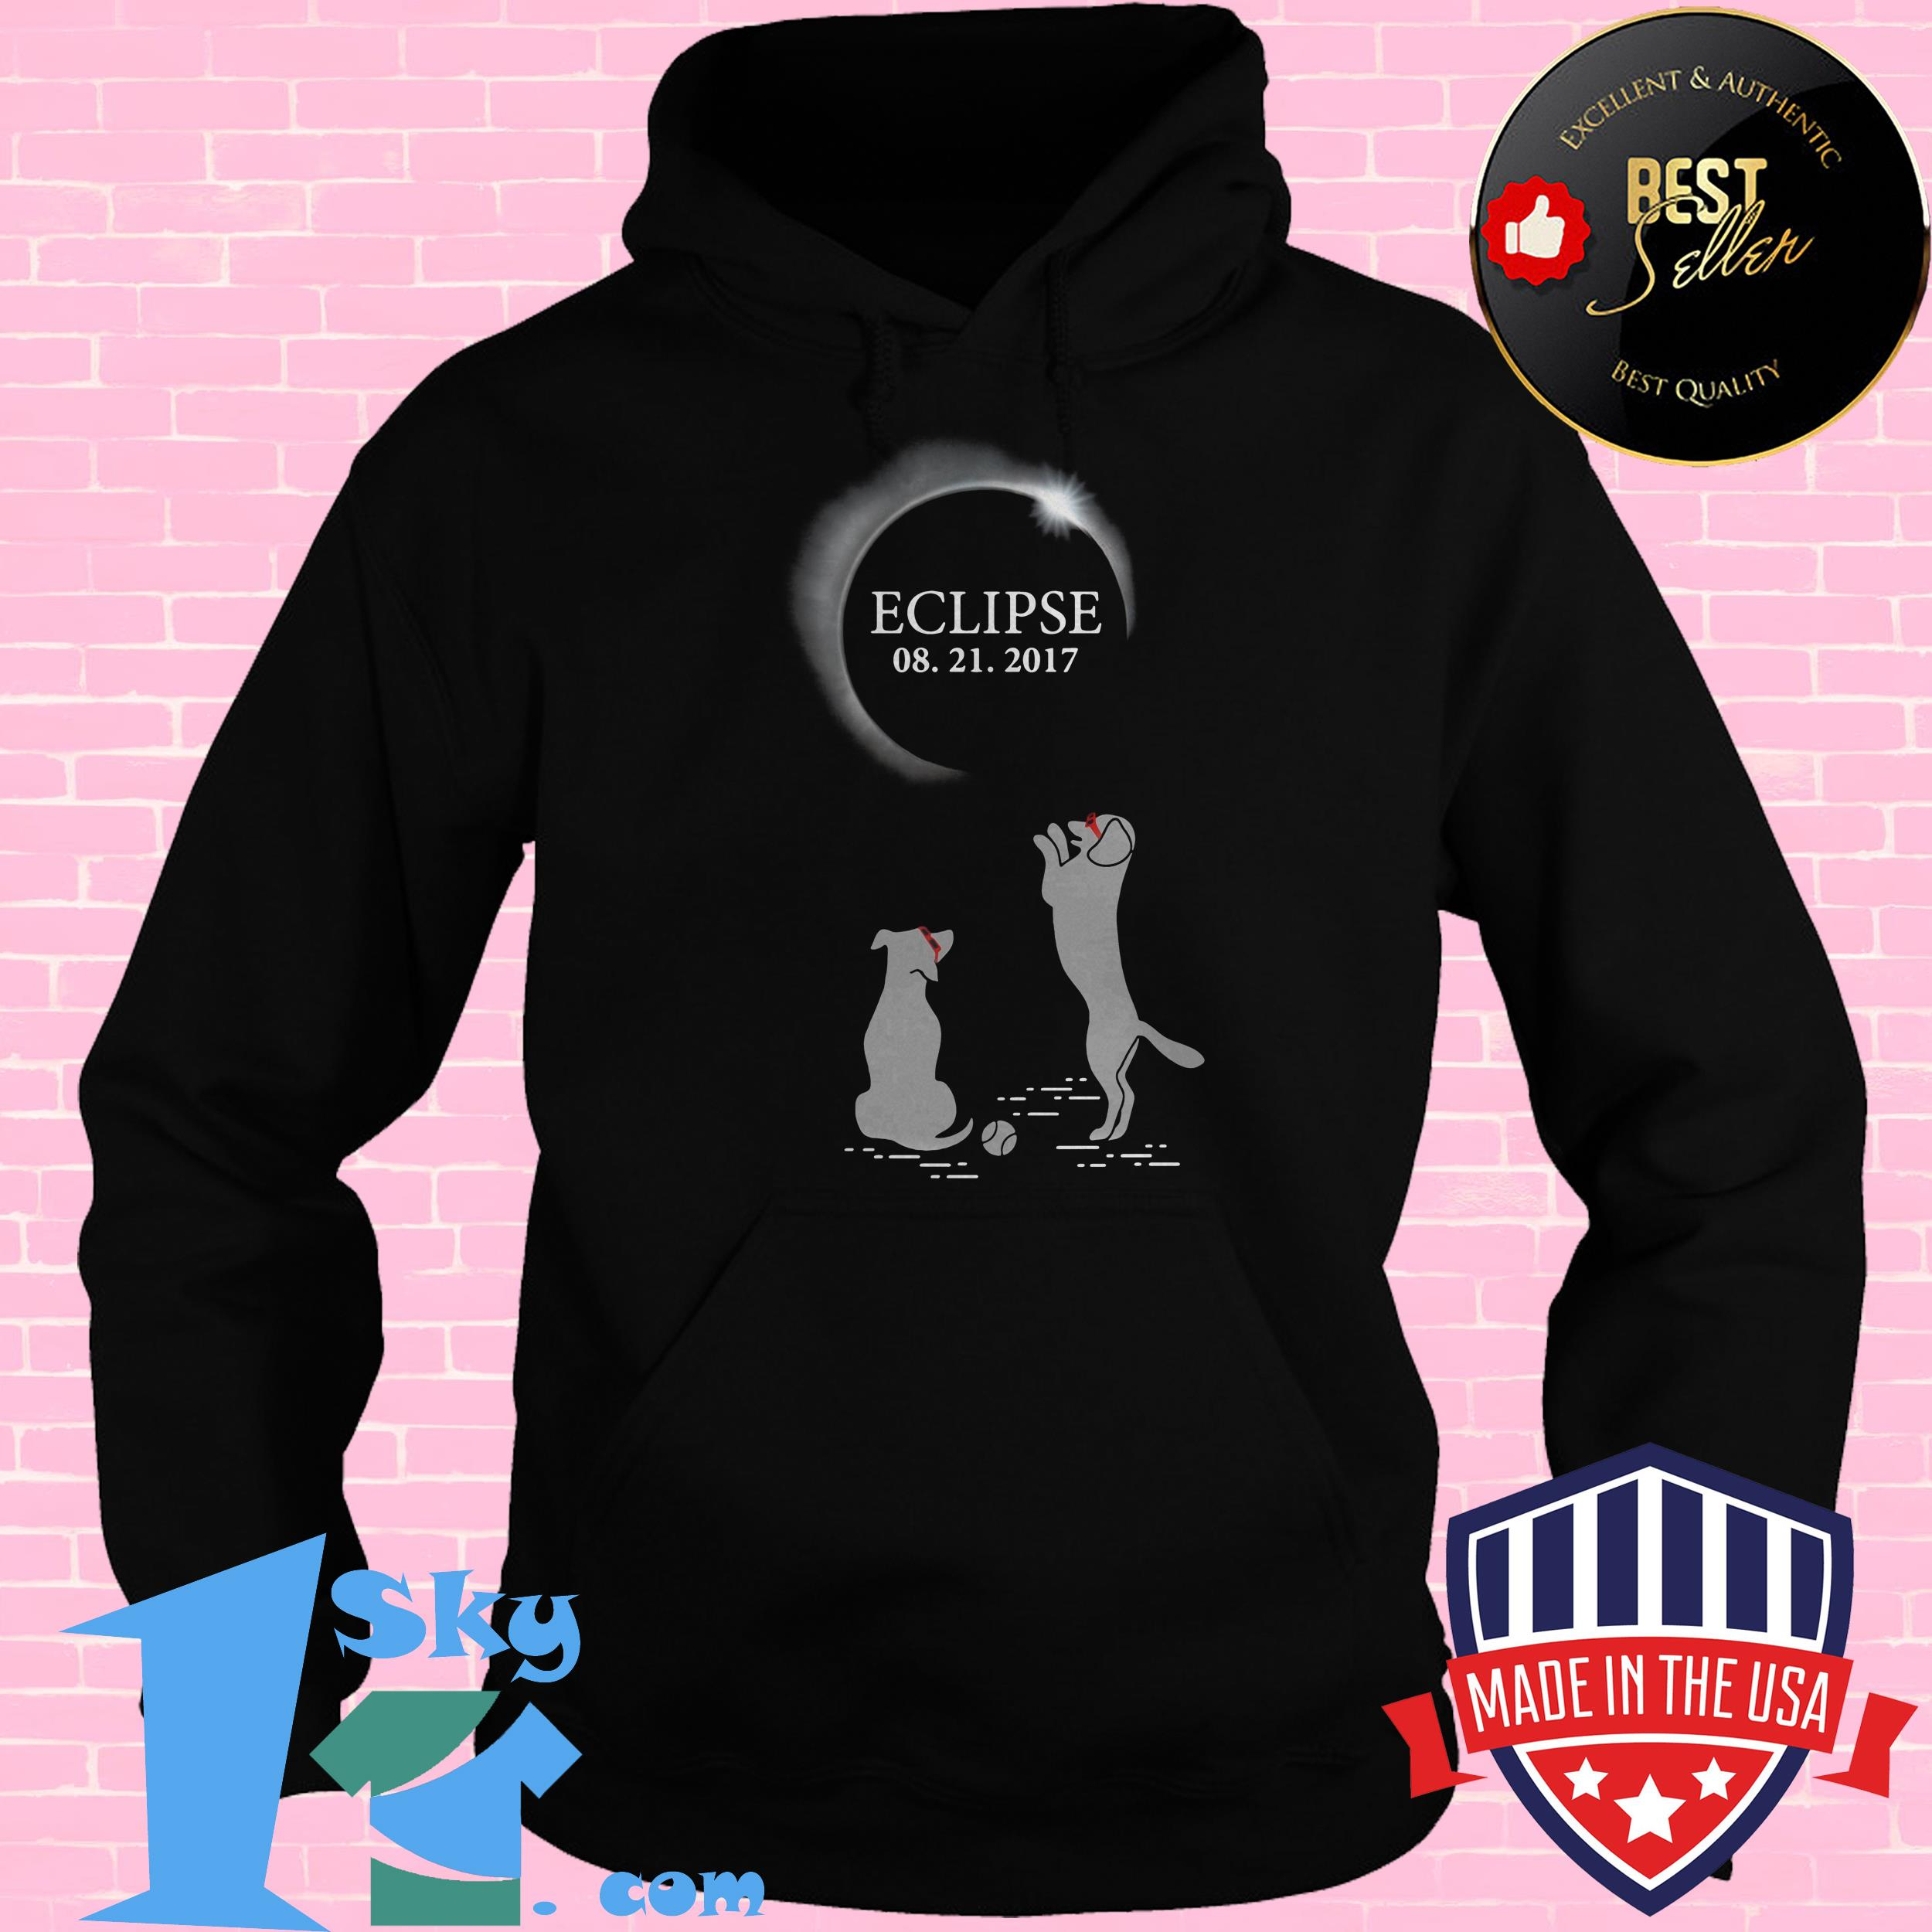 solar eclipse august 21 2017 dogs hoodie - Solar Eclipse August 21 2017 Dogs shirt